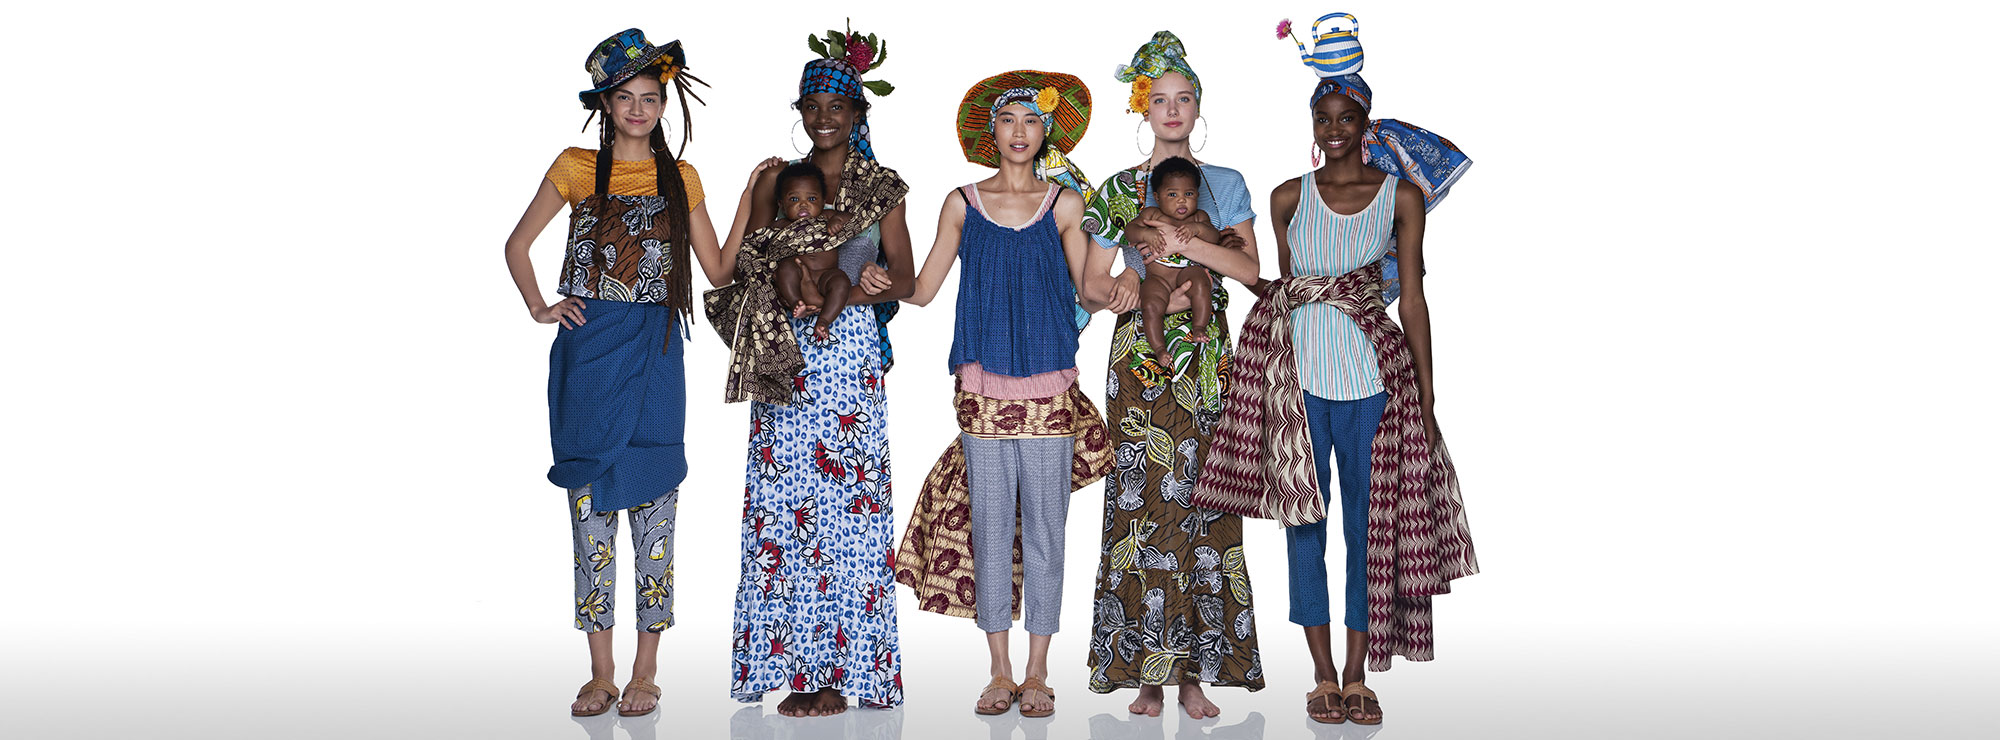 7e04a6552c83 United Colors of Benetton - Official Site